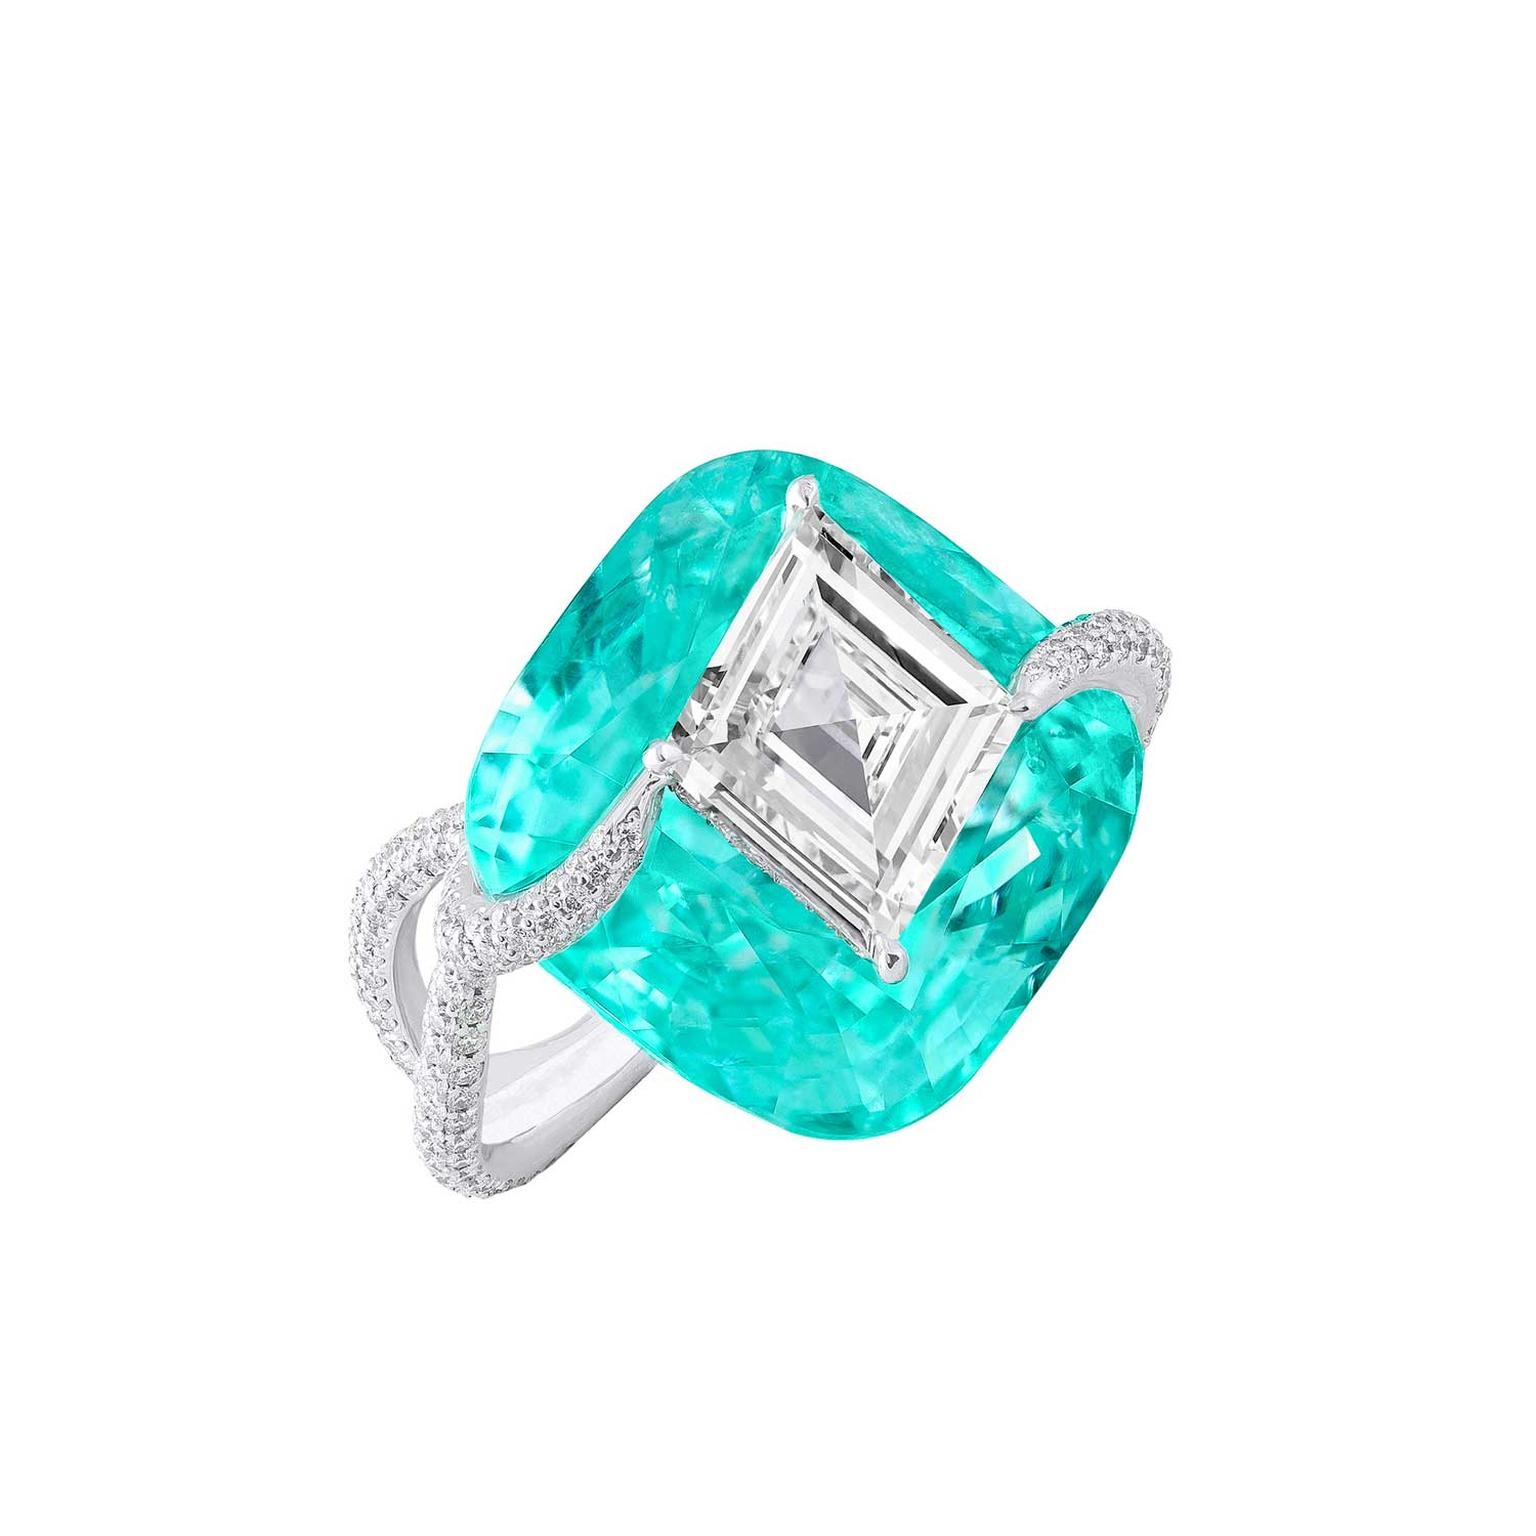 "Boghossian lozenge-shaped diamond and Paraiba tourmaline ""Kissing"" ring"